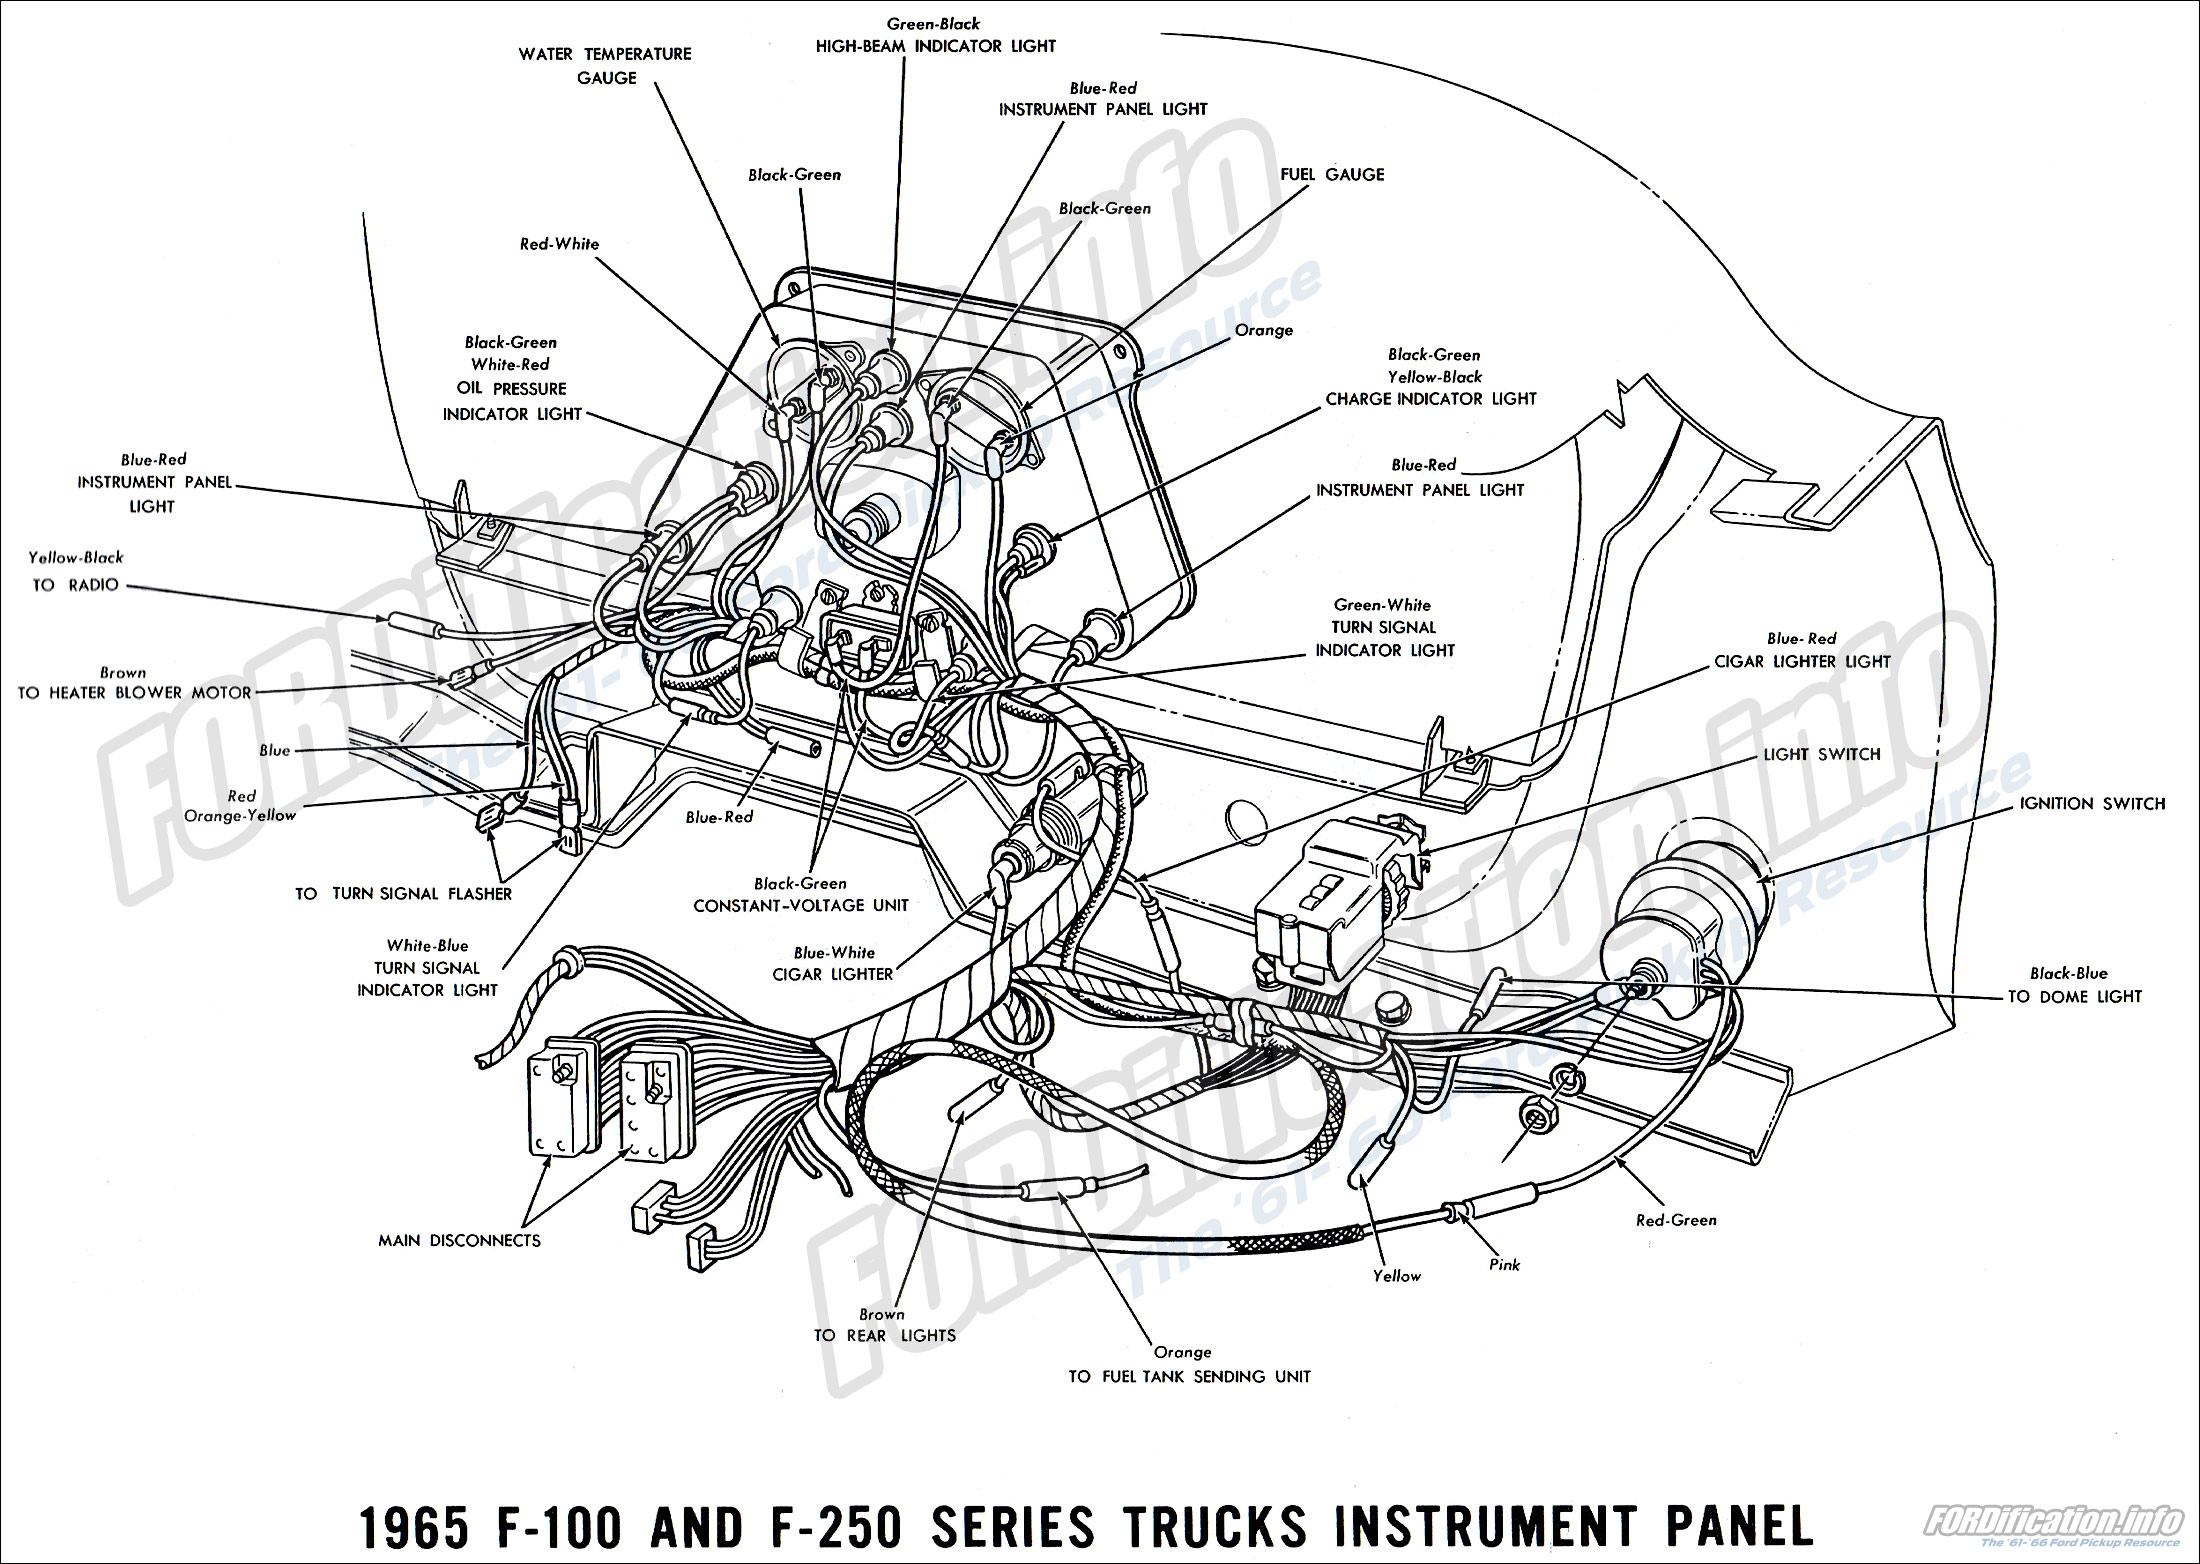 63 Ford Galaxie Wiring Diagram